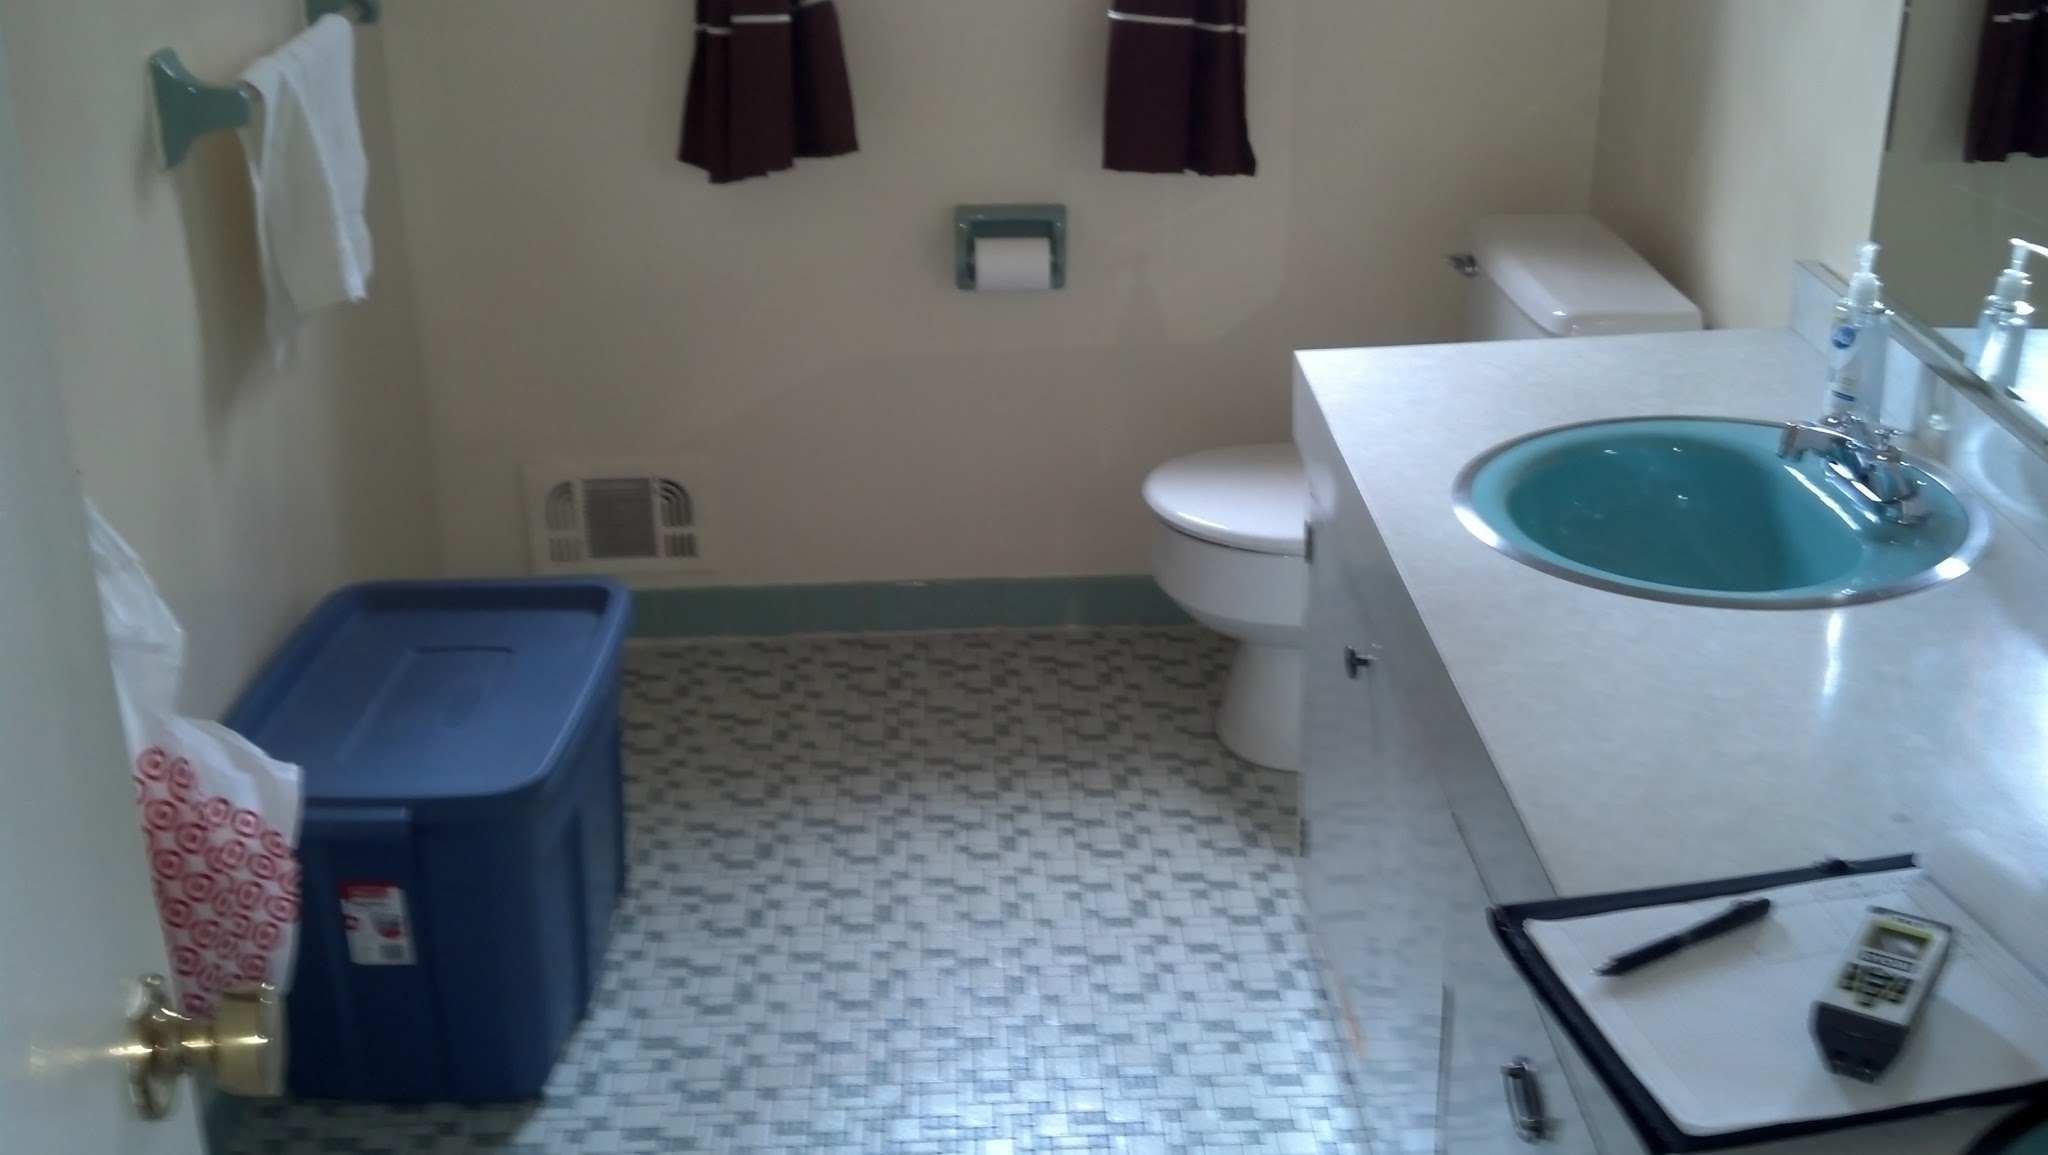 Contemporary Bathroom Remodel At The New Jersey Shore - Bathroom remodel new jersey